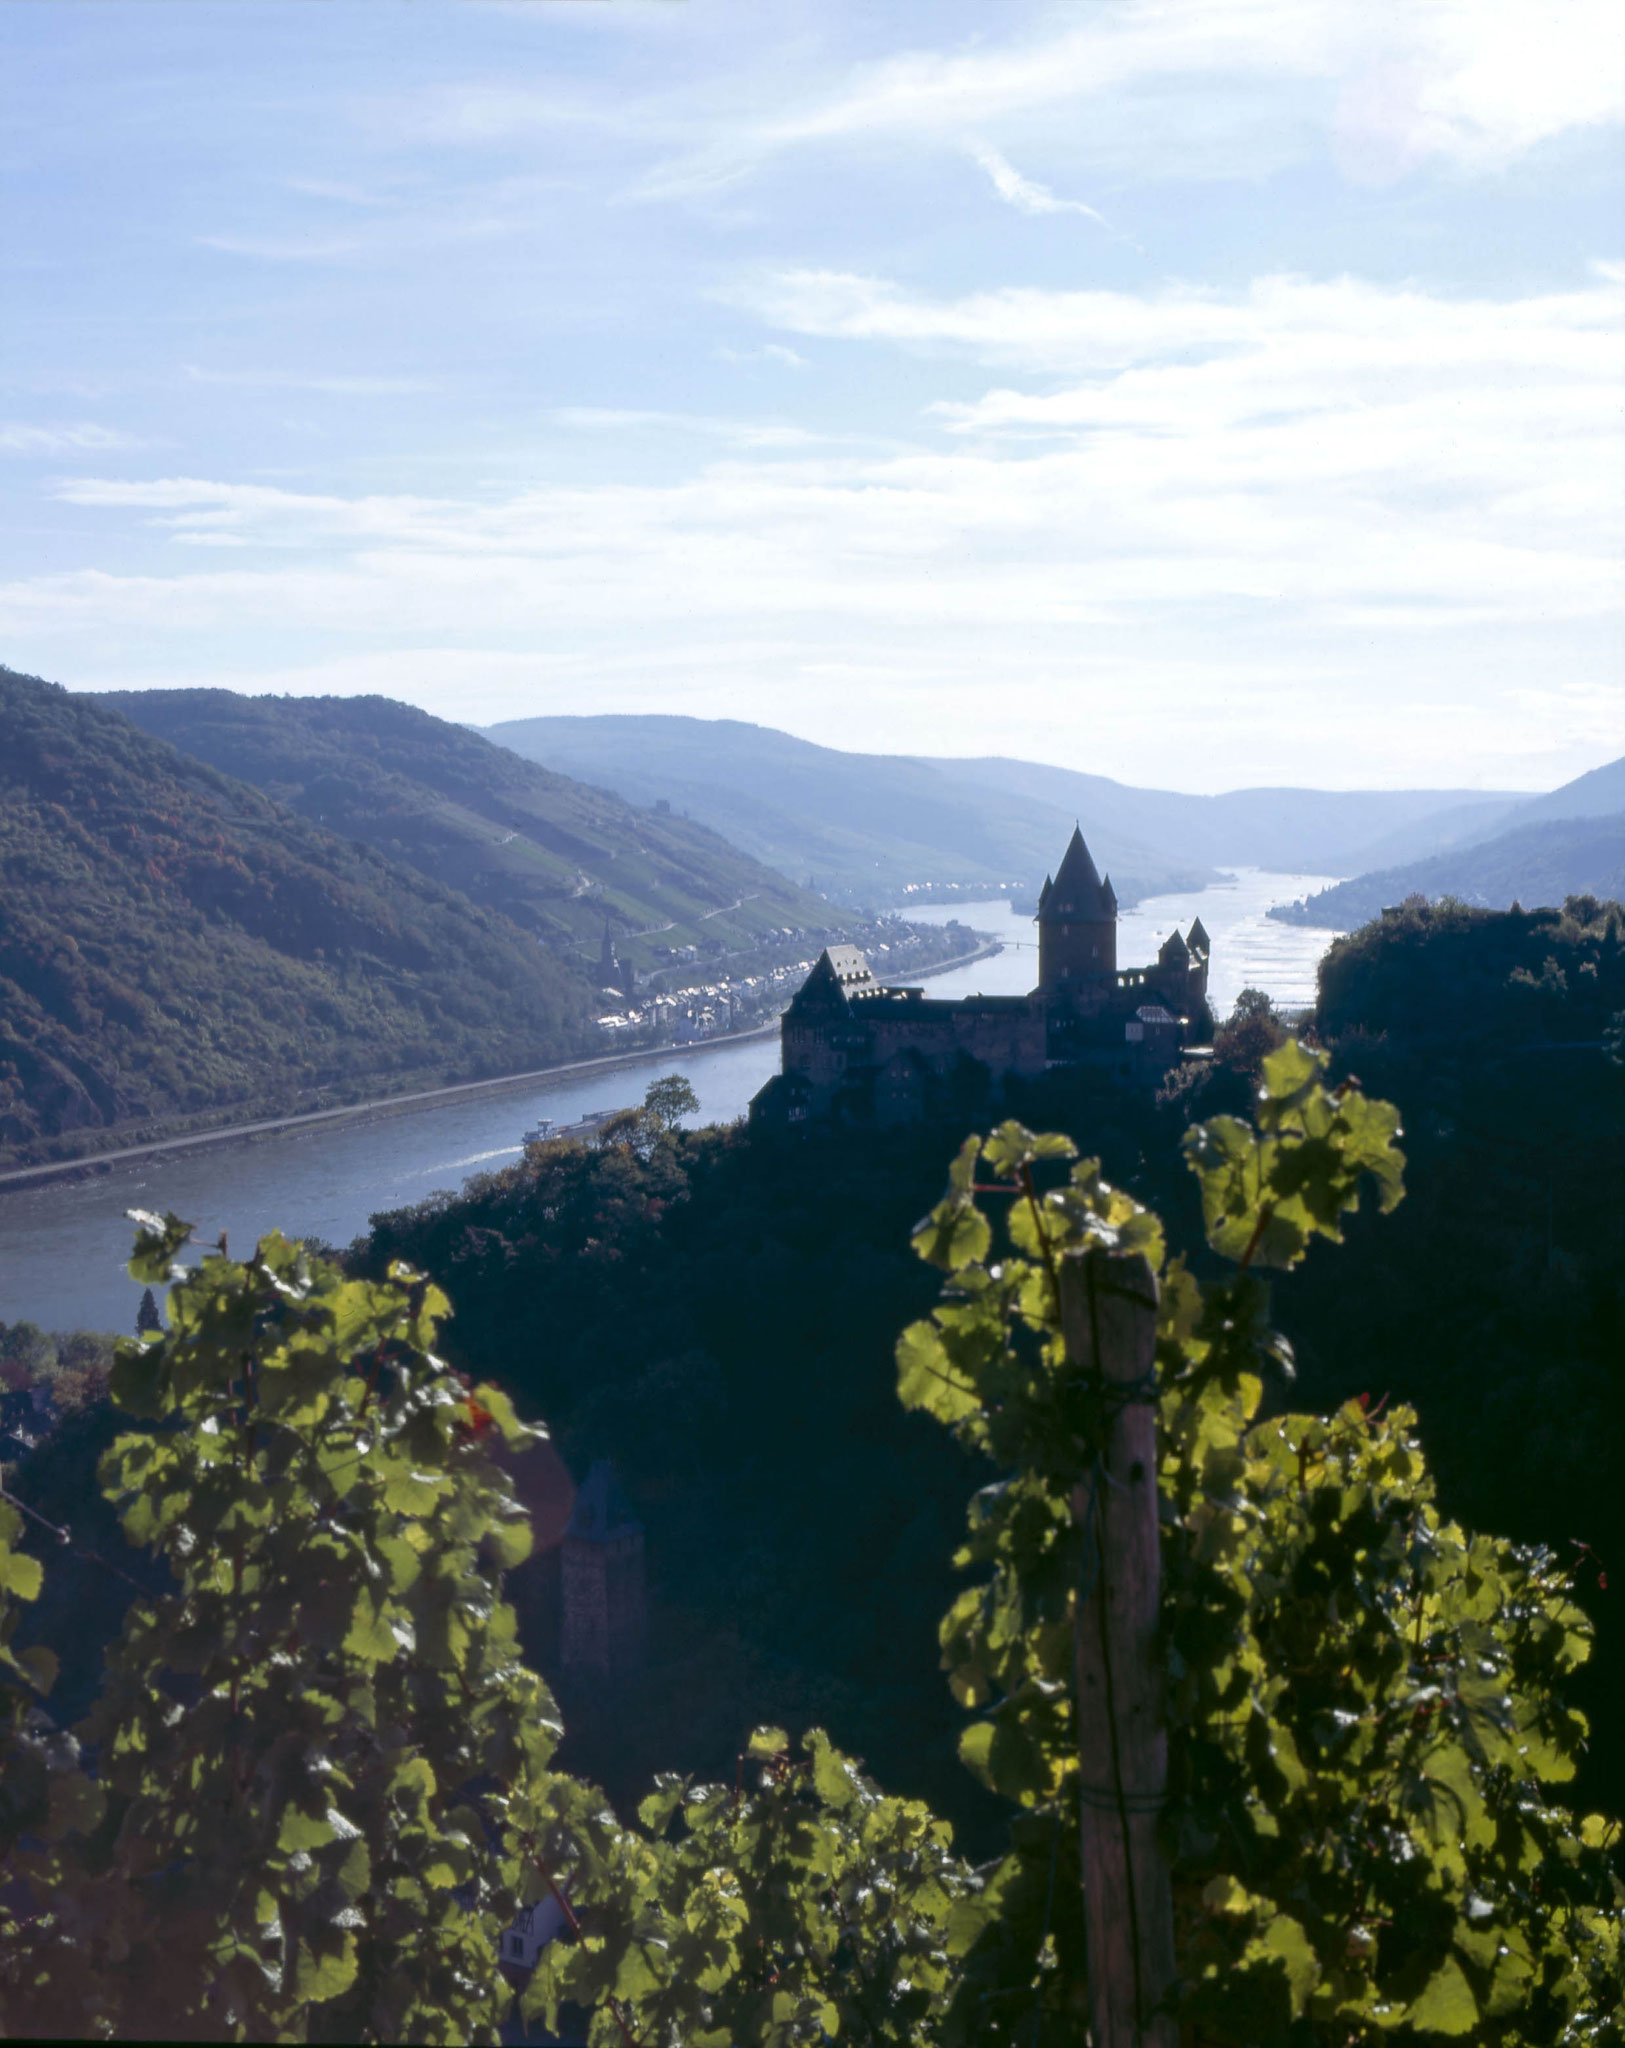 The magic combination of Rhine River and historic Castles